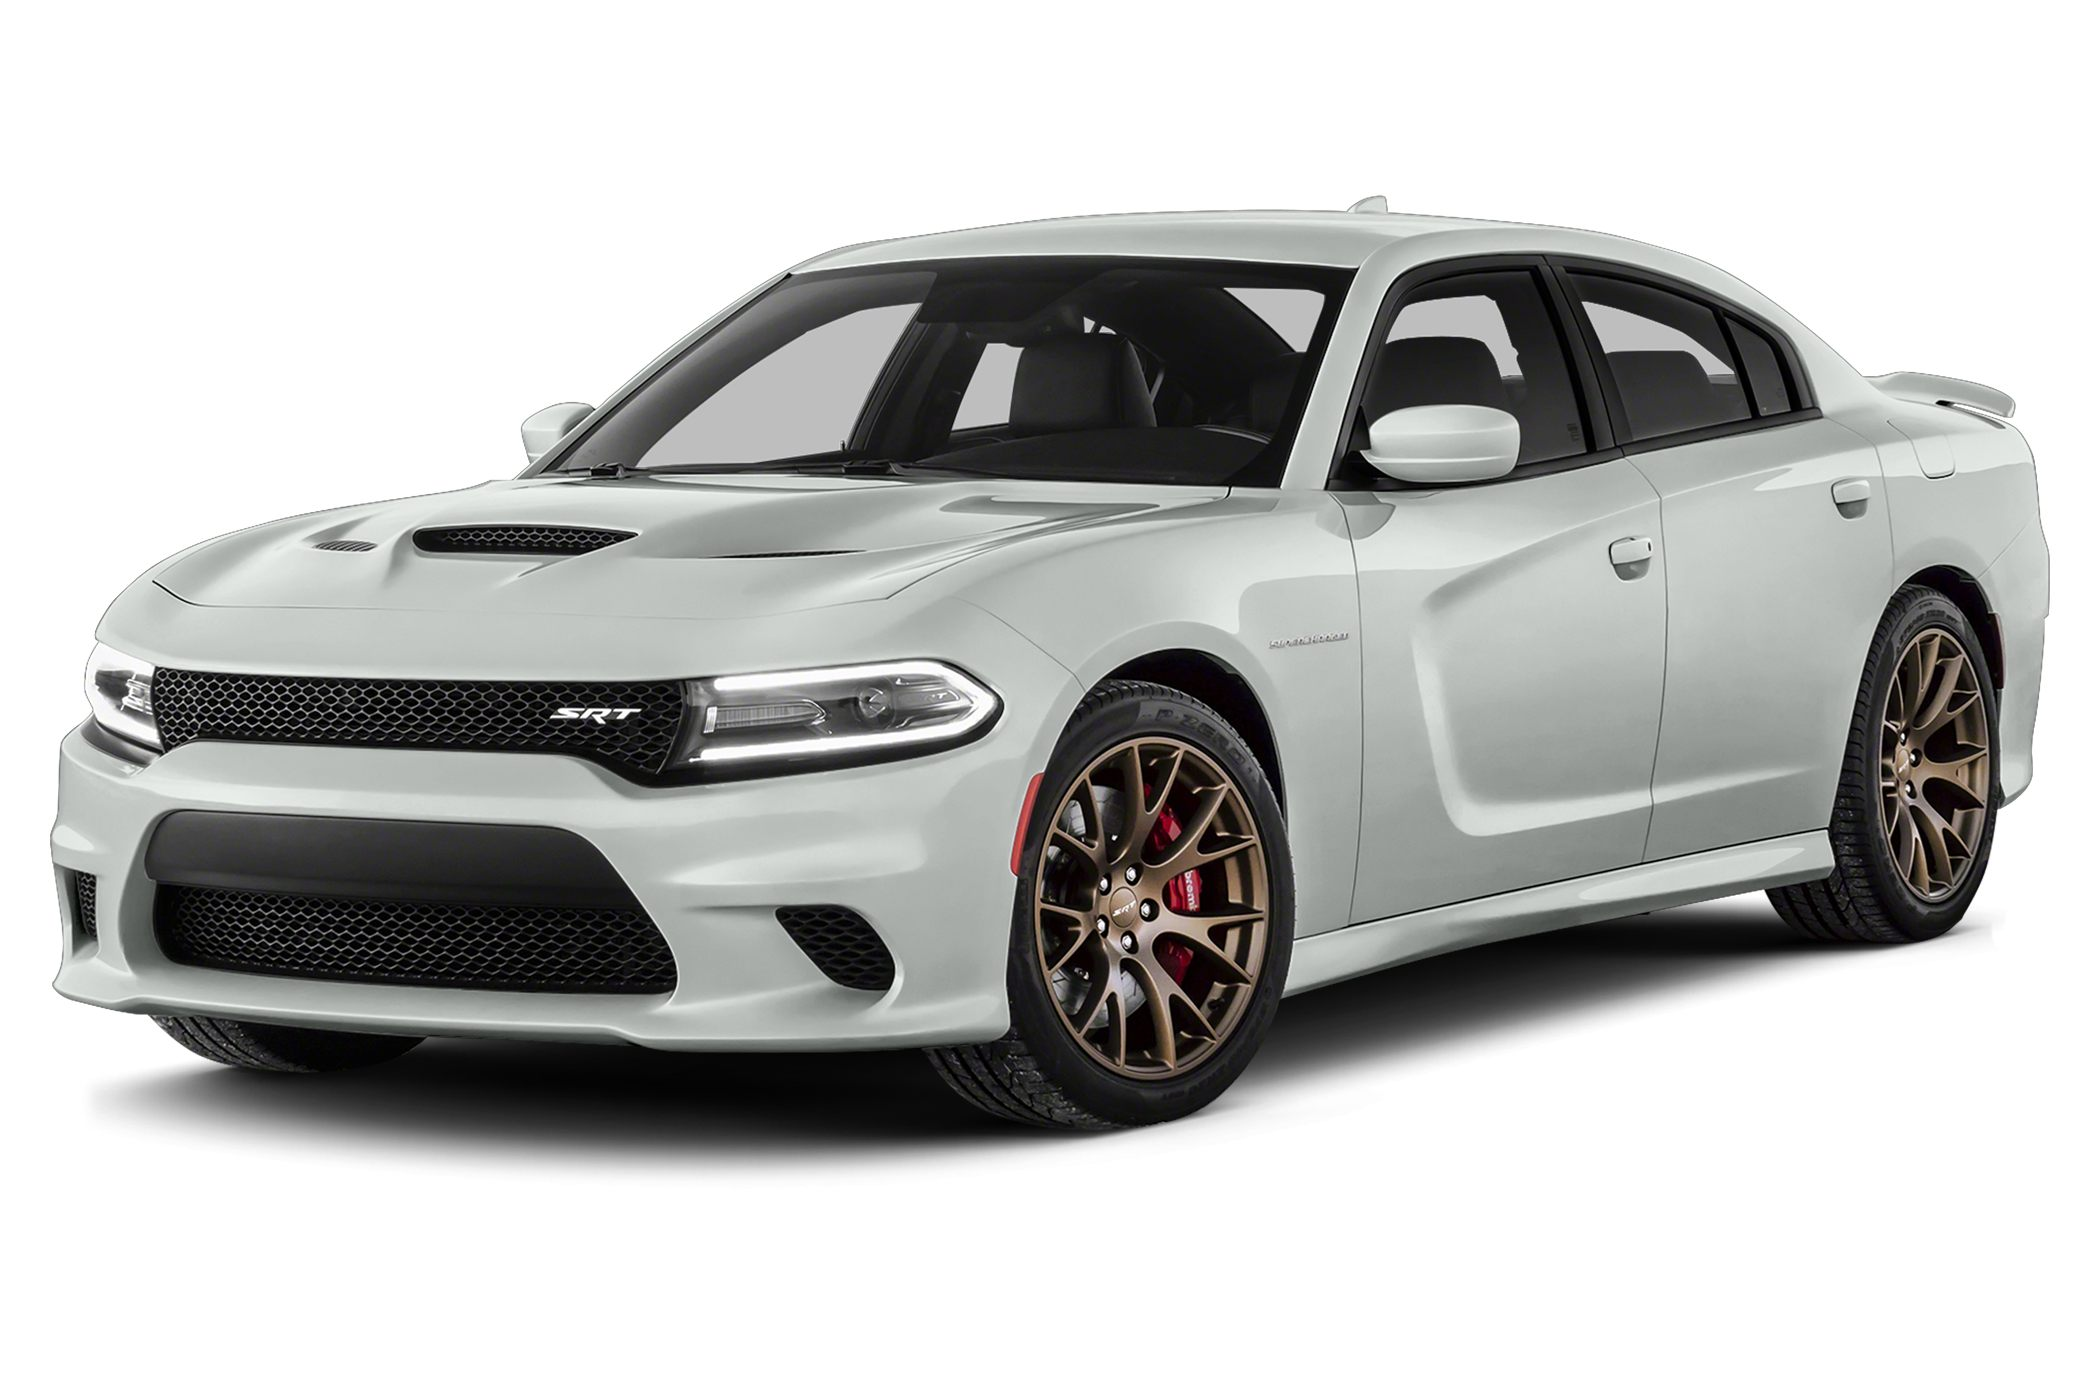 2015 Dodge Charger SRT 392 Sedan for sale in Fredericksburg for $54,460 with 0 miles